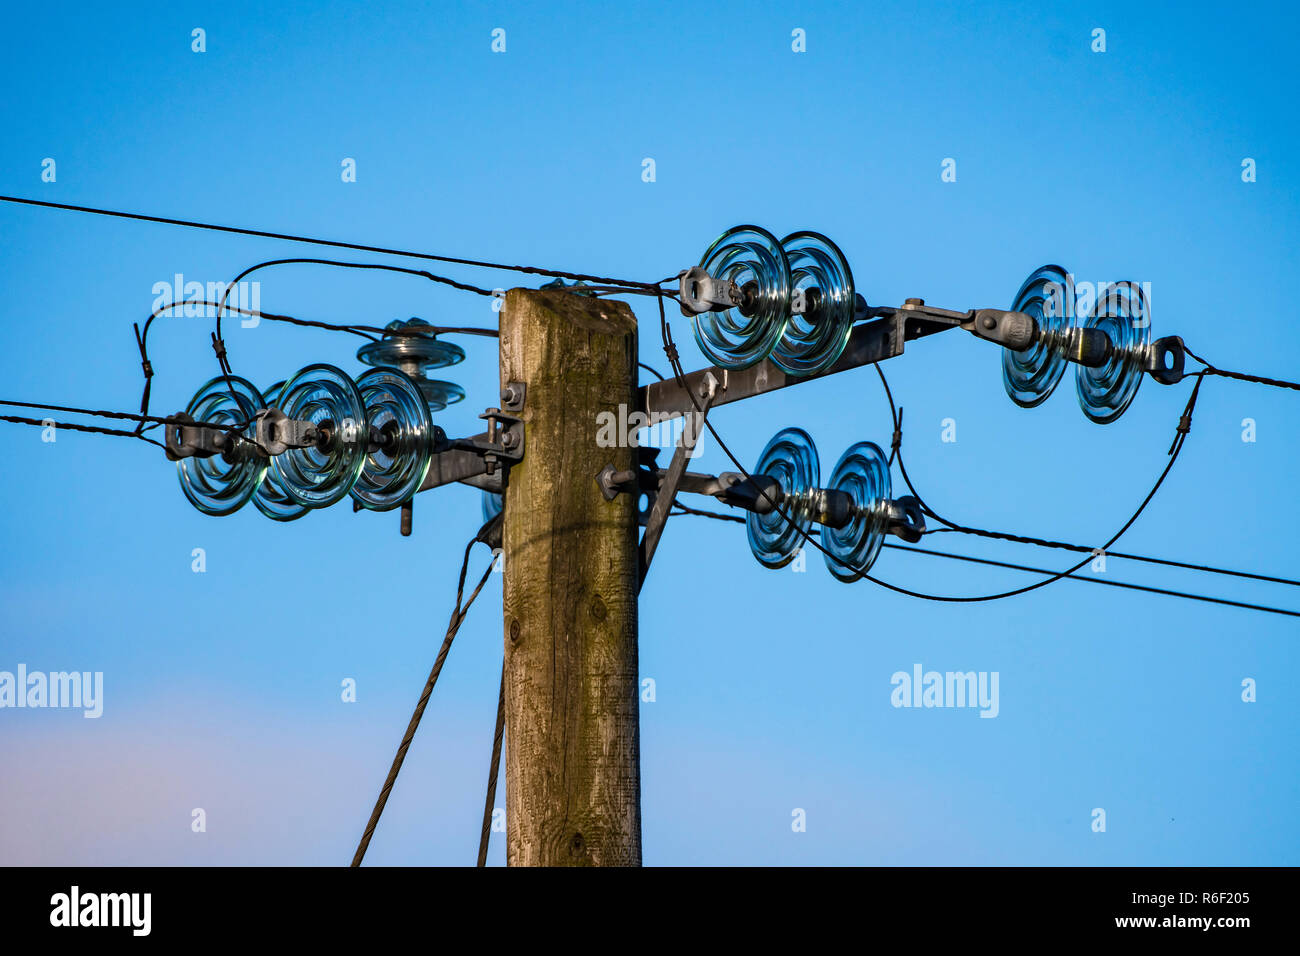 Electrical pole, with glass insulators. Stock Photo